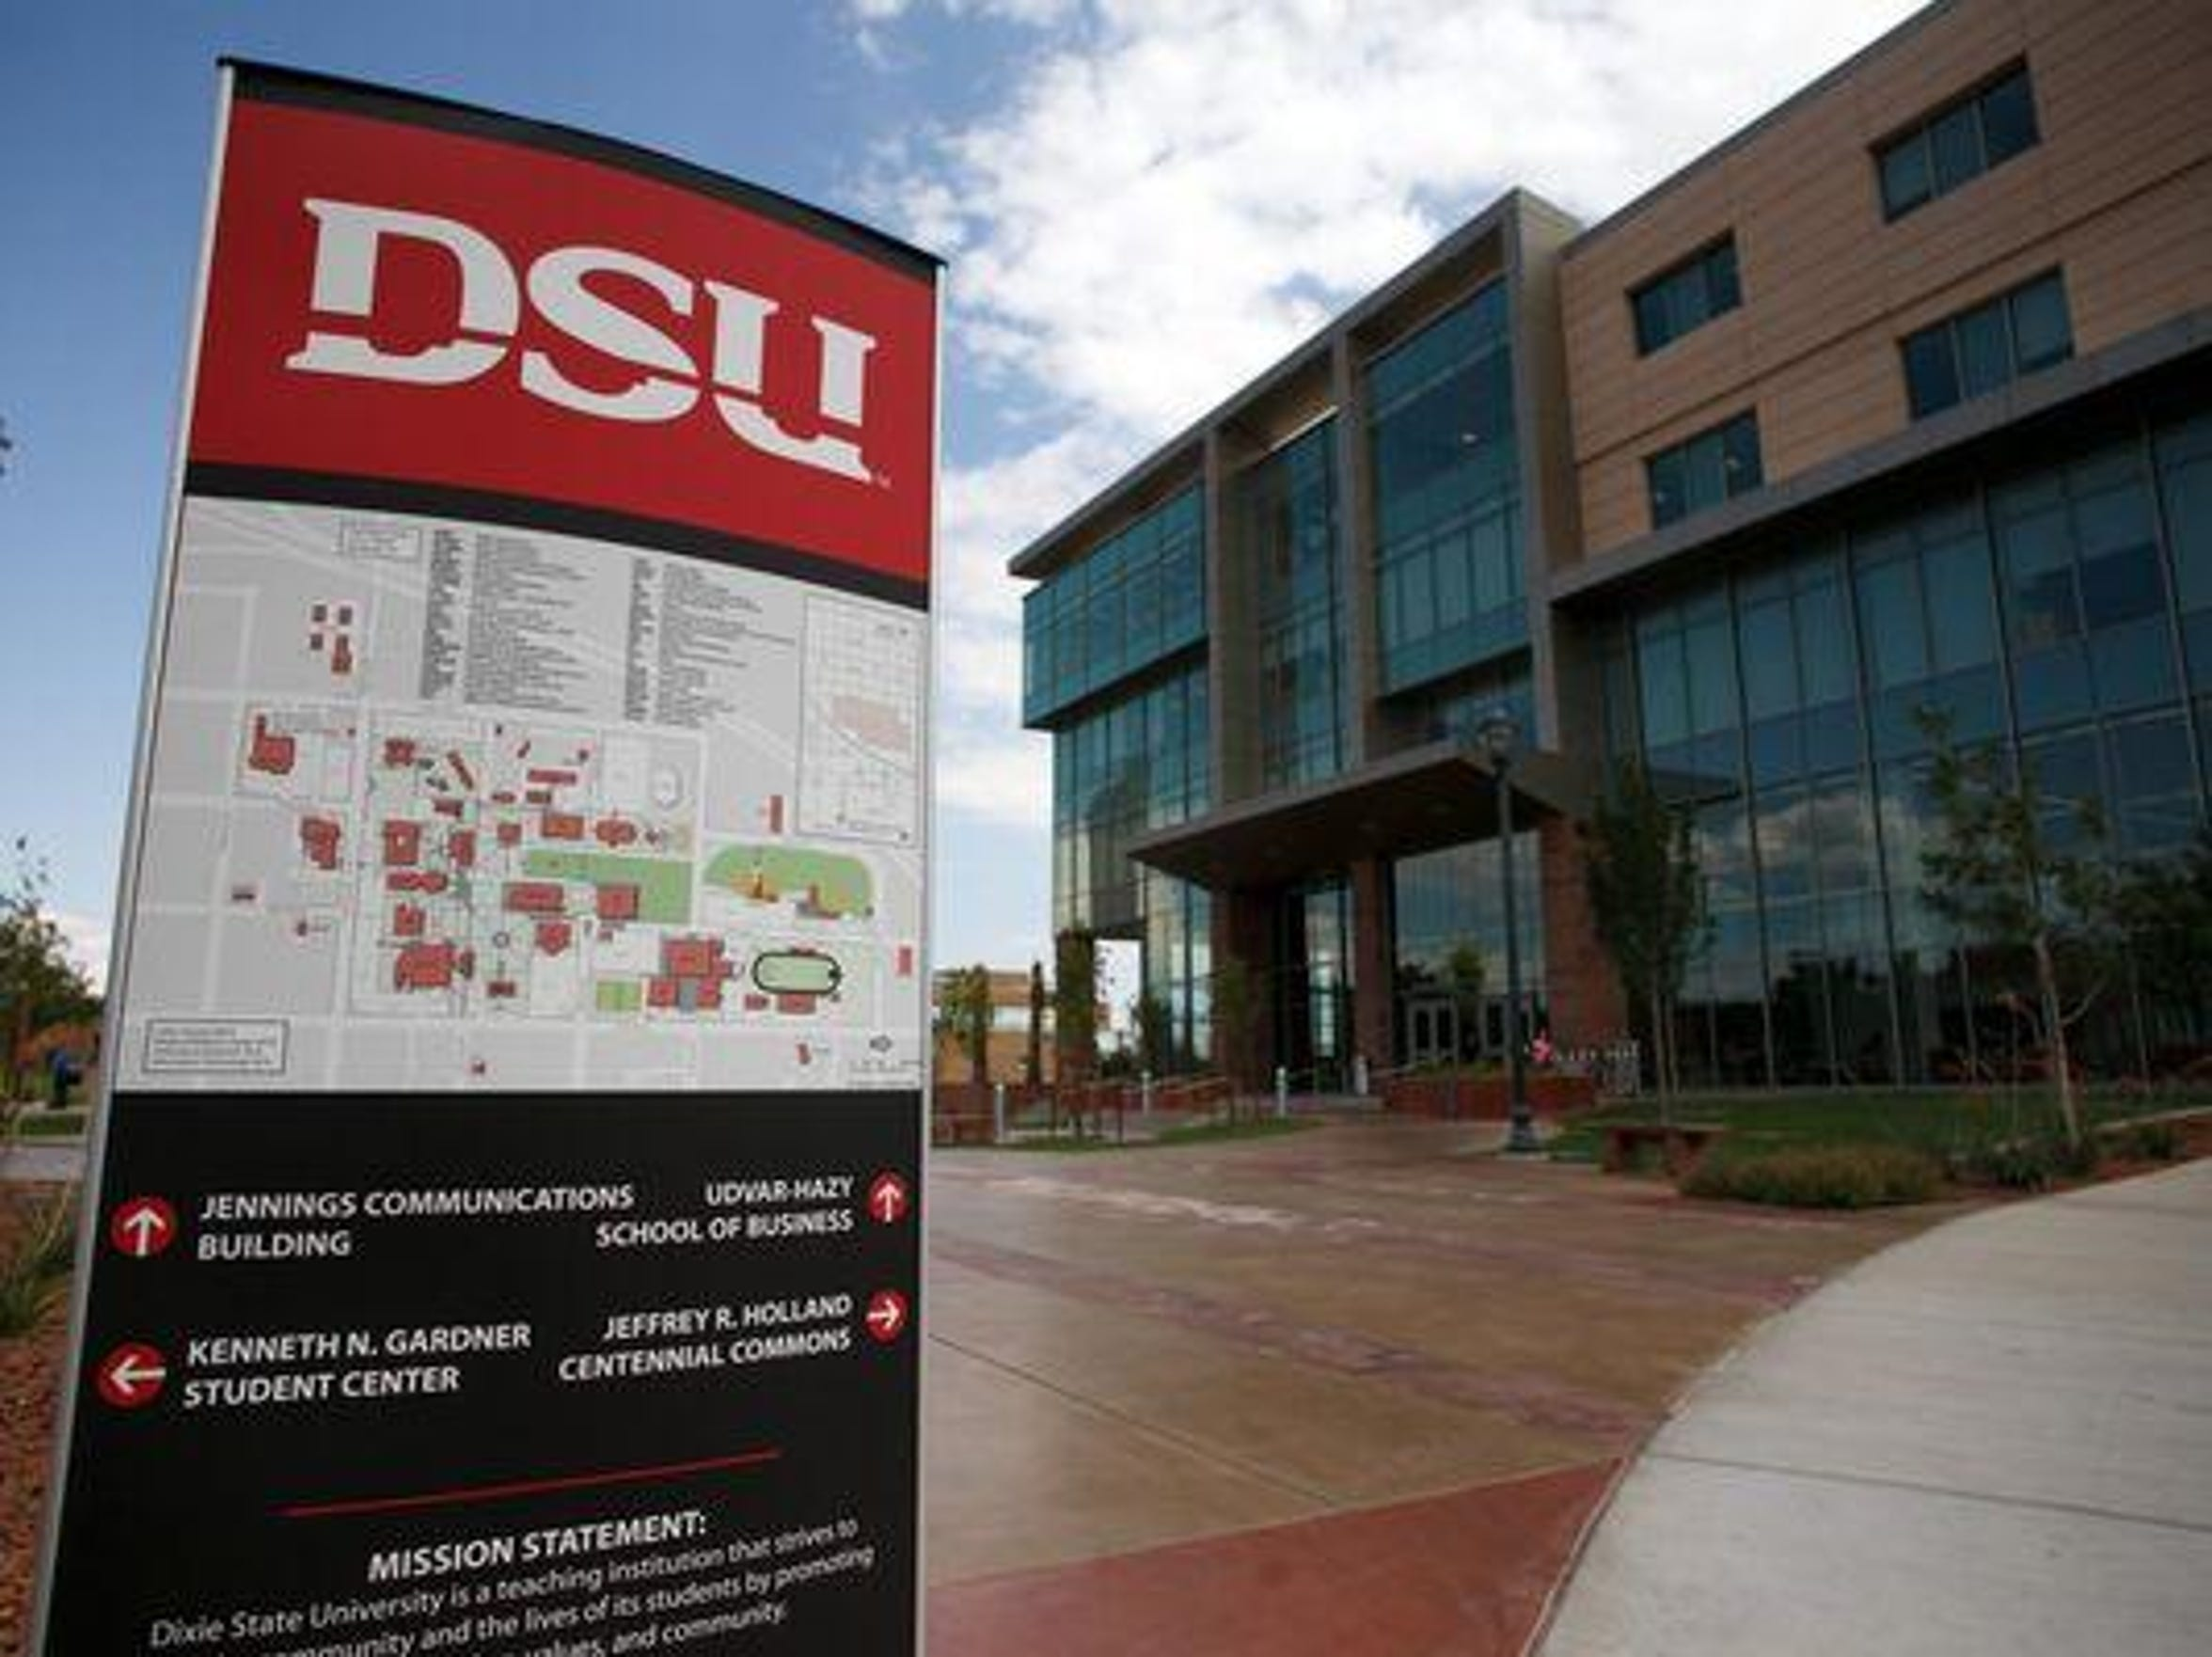 Dixie State University, St. George